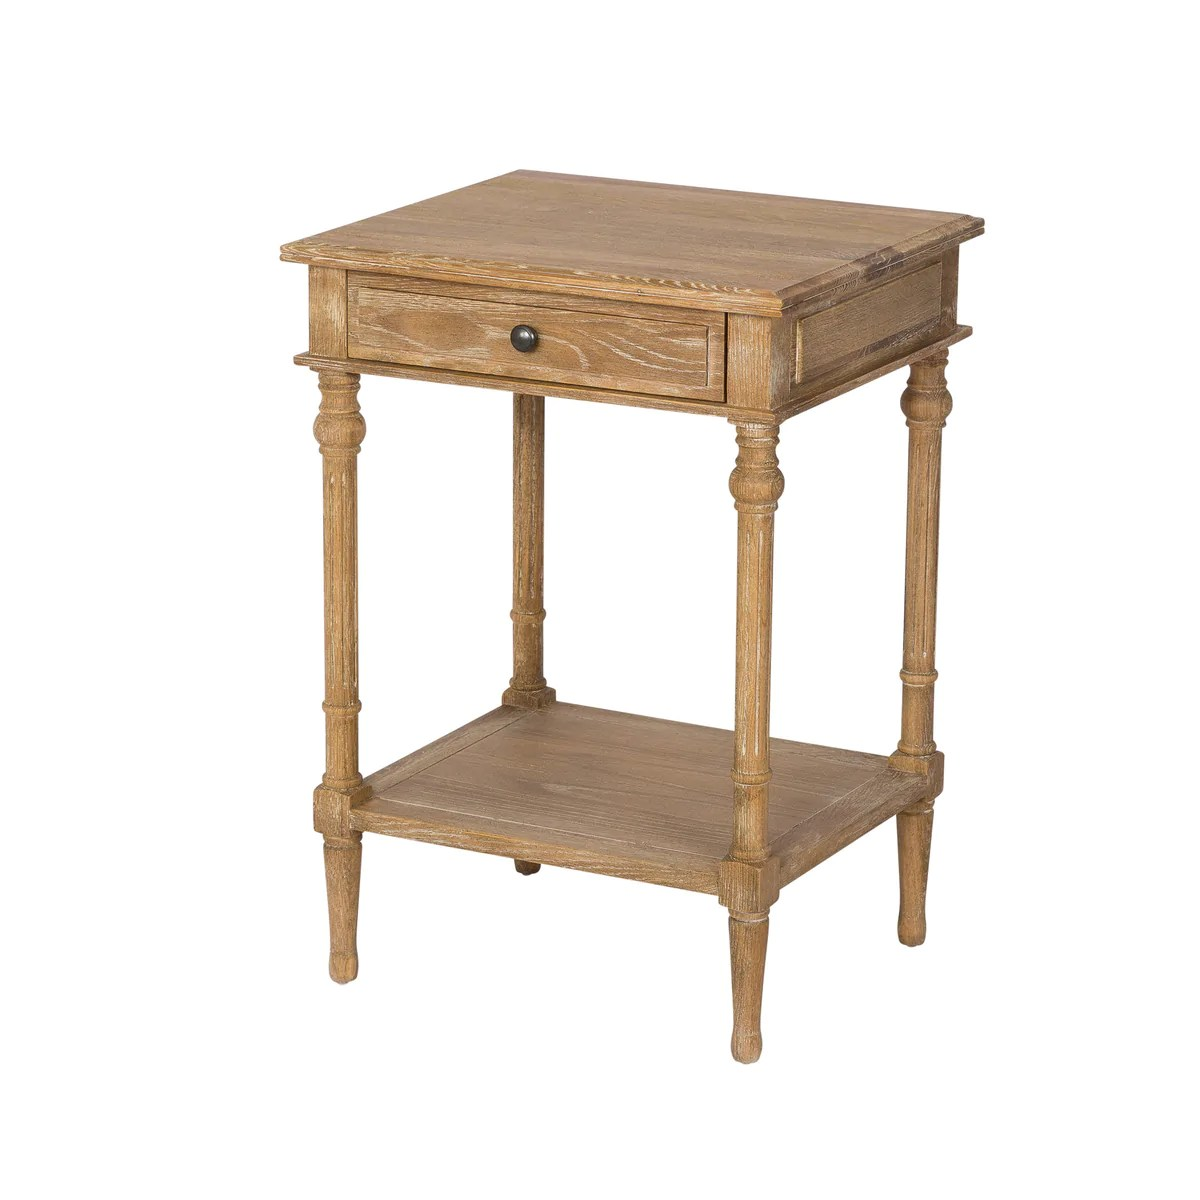 Provincial Bedside Tables 1 Drawer 1 Shelf Oak Bedside Table